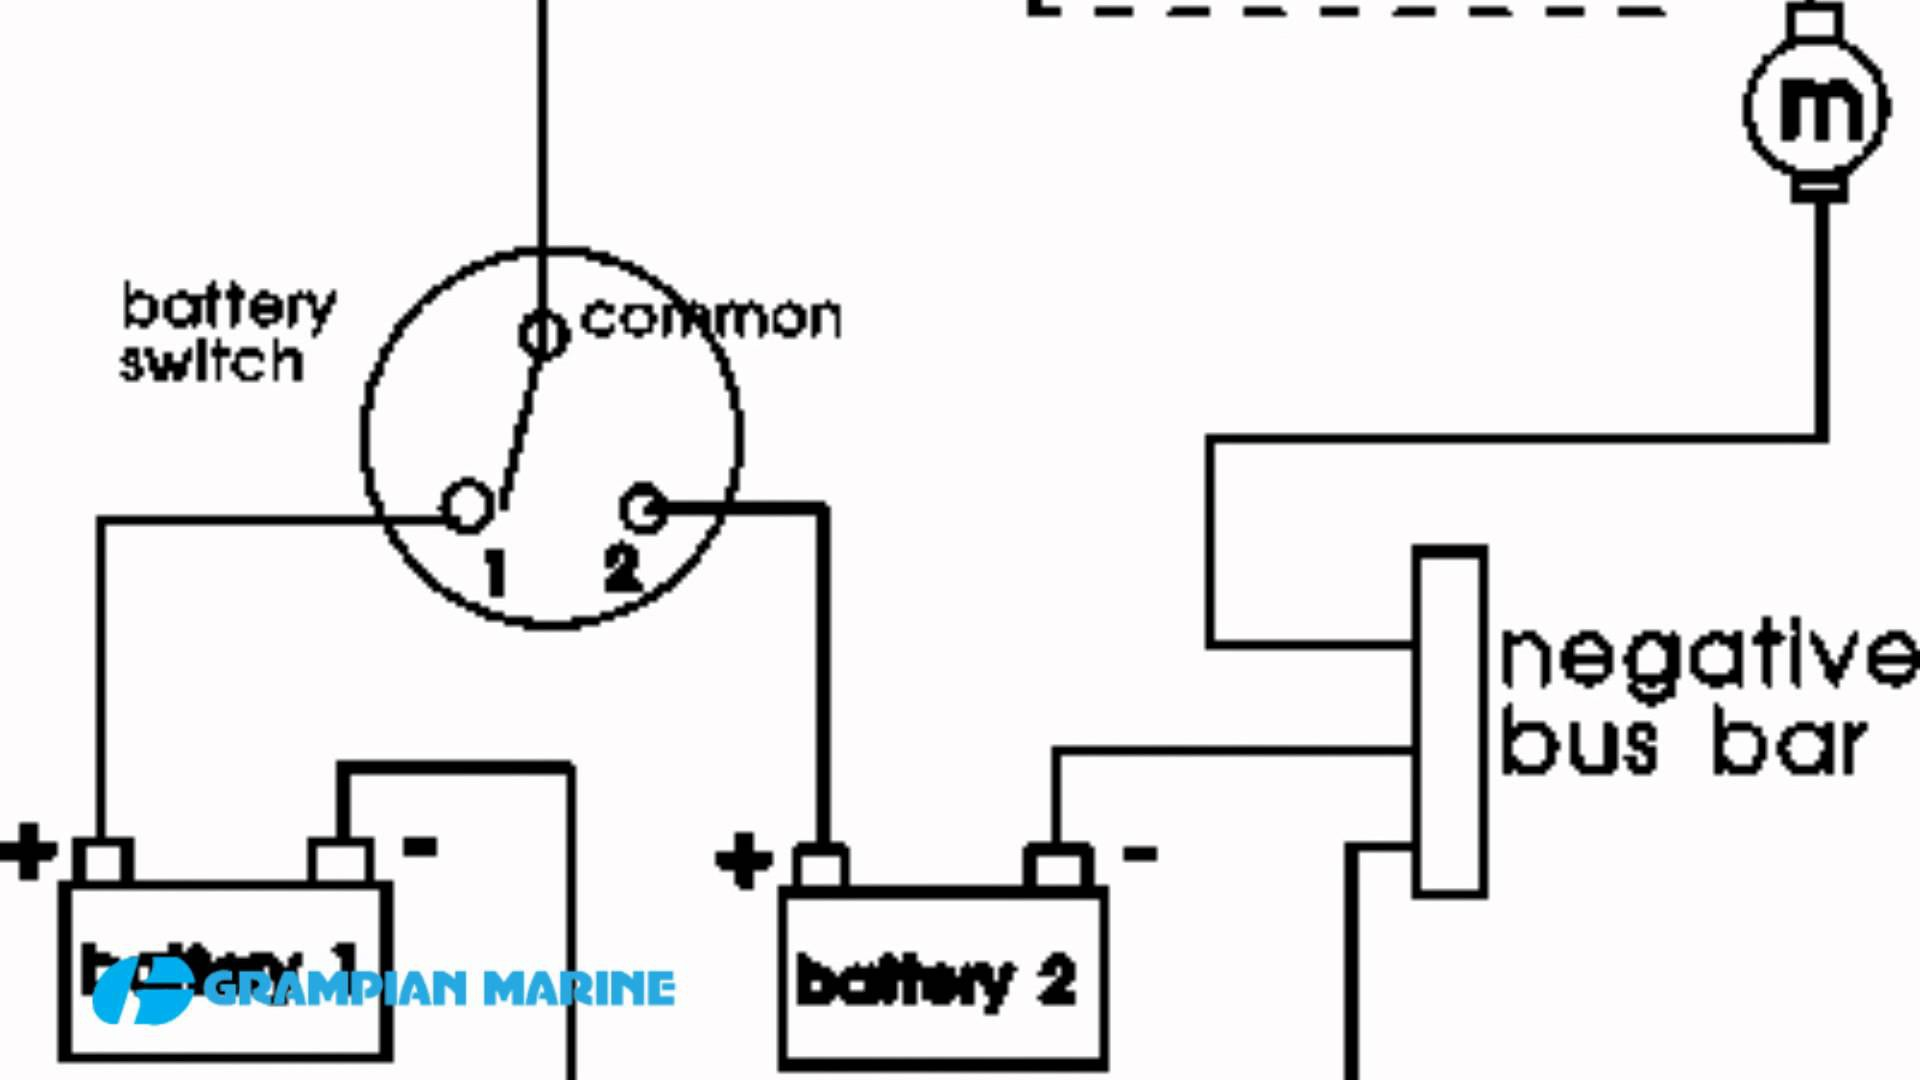 Bep Marine Battery Switch Wiring Diagram Collection